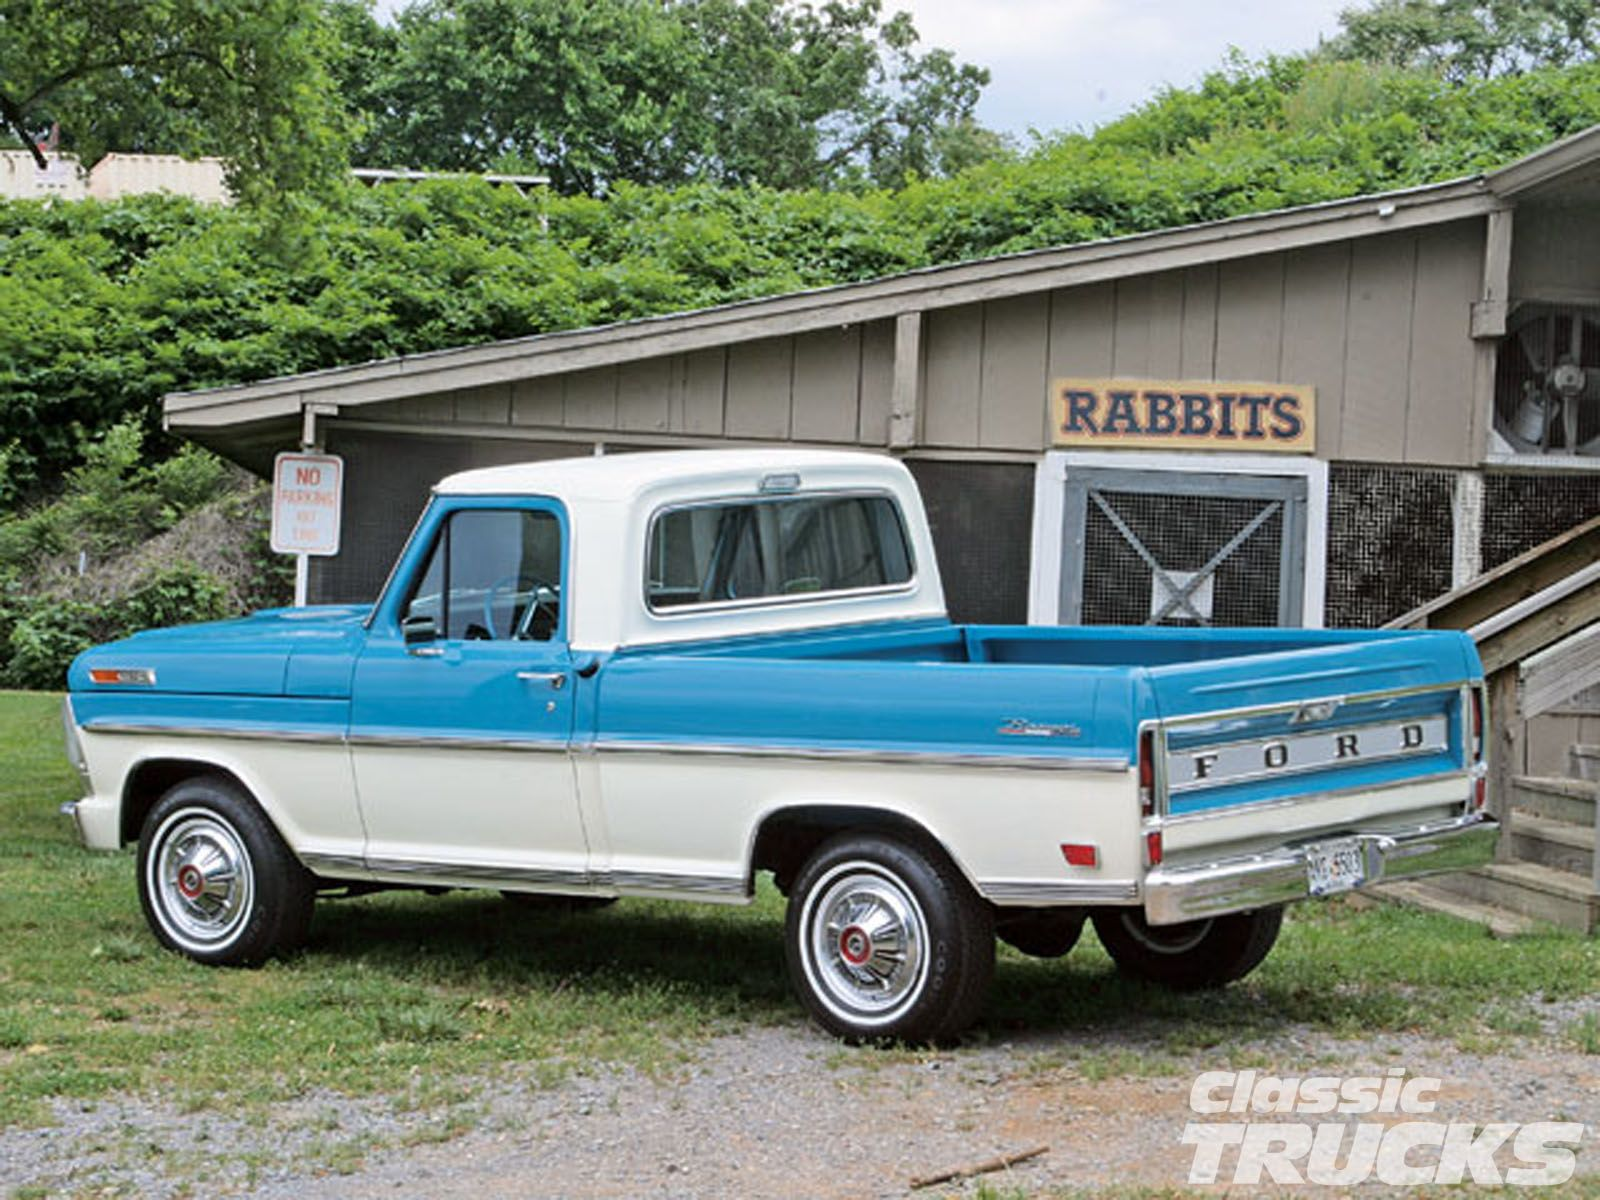 Classic Ford Trucks 0611clt 1969 F100 Pickup Truck Rabbits 1964 F250 Camper Special Door Way Photo 8